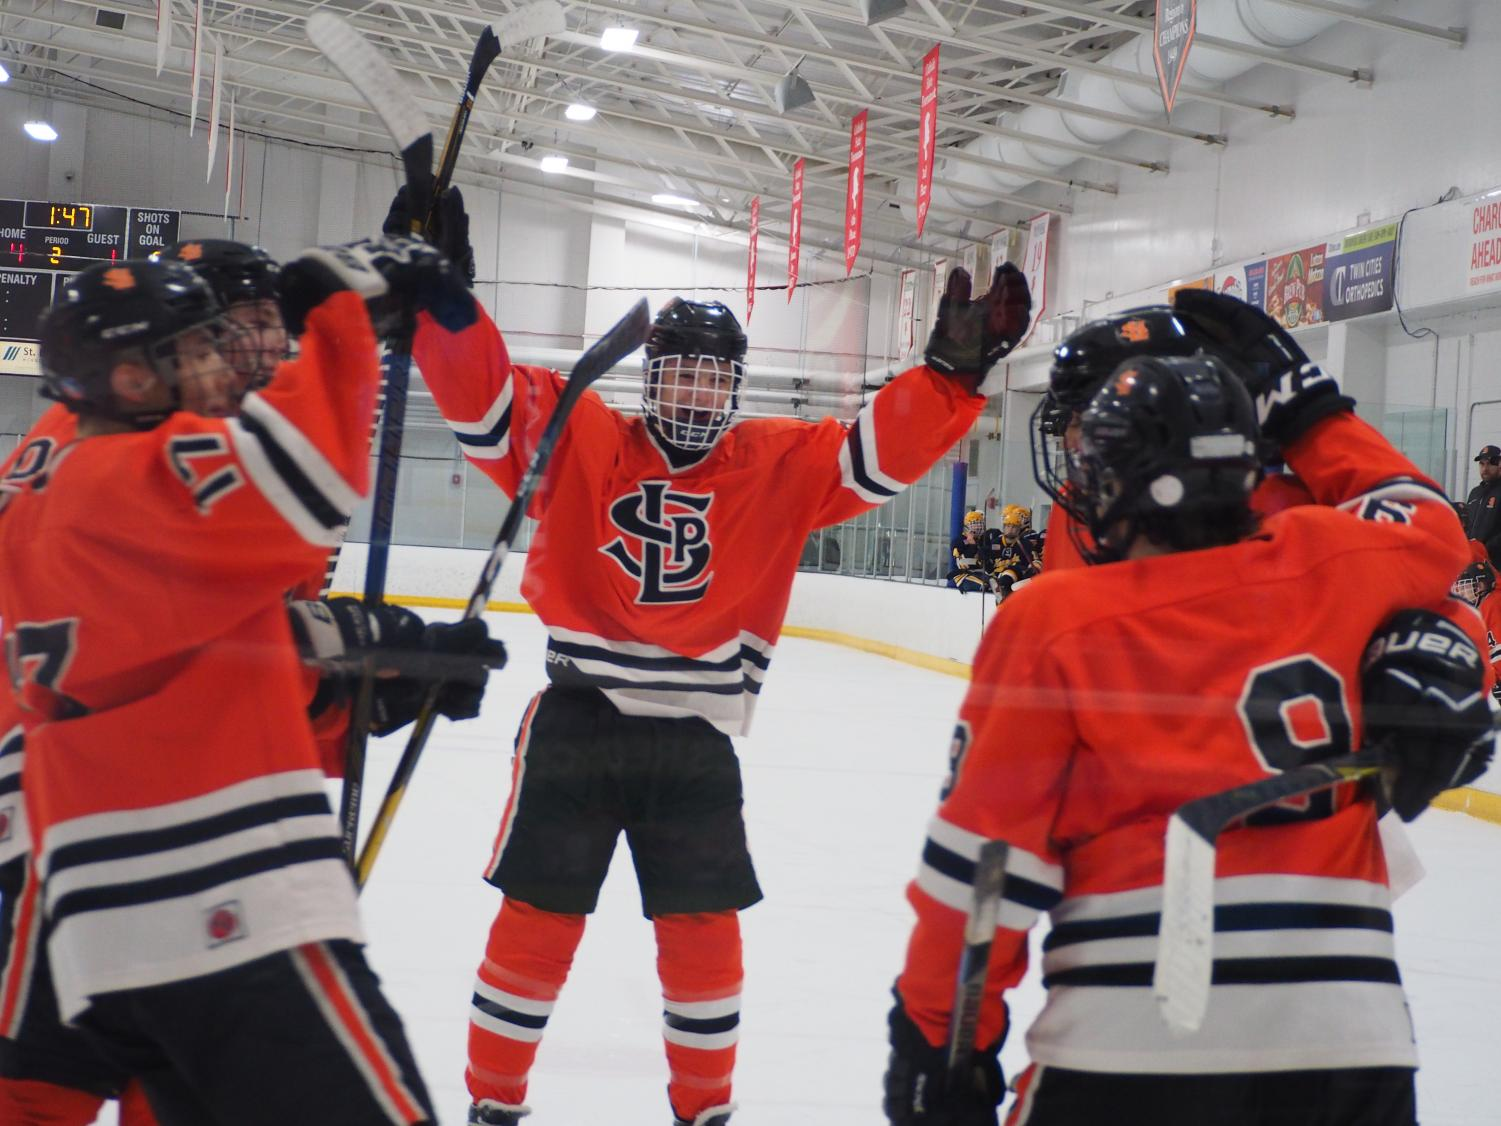 Junior+Bobby+Doss+joins+a+huddle+to+celebrate+sophomore+Austin+Amelse%27s+power+play+goal.+The+score+was+6-1+with+one+goal+in+the+first+period%2C+three+in+the+second+period+and+two+in+the+last+period.+Park%27s+next+game+is+against+Jefferson+at+7+p.m.+Jan.+31+at+the+Rec+Center.+